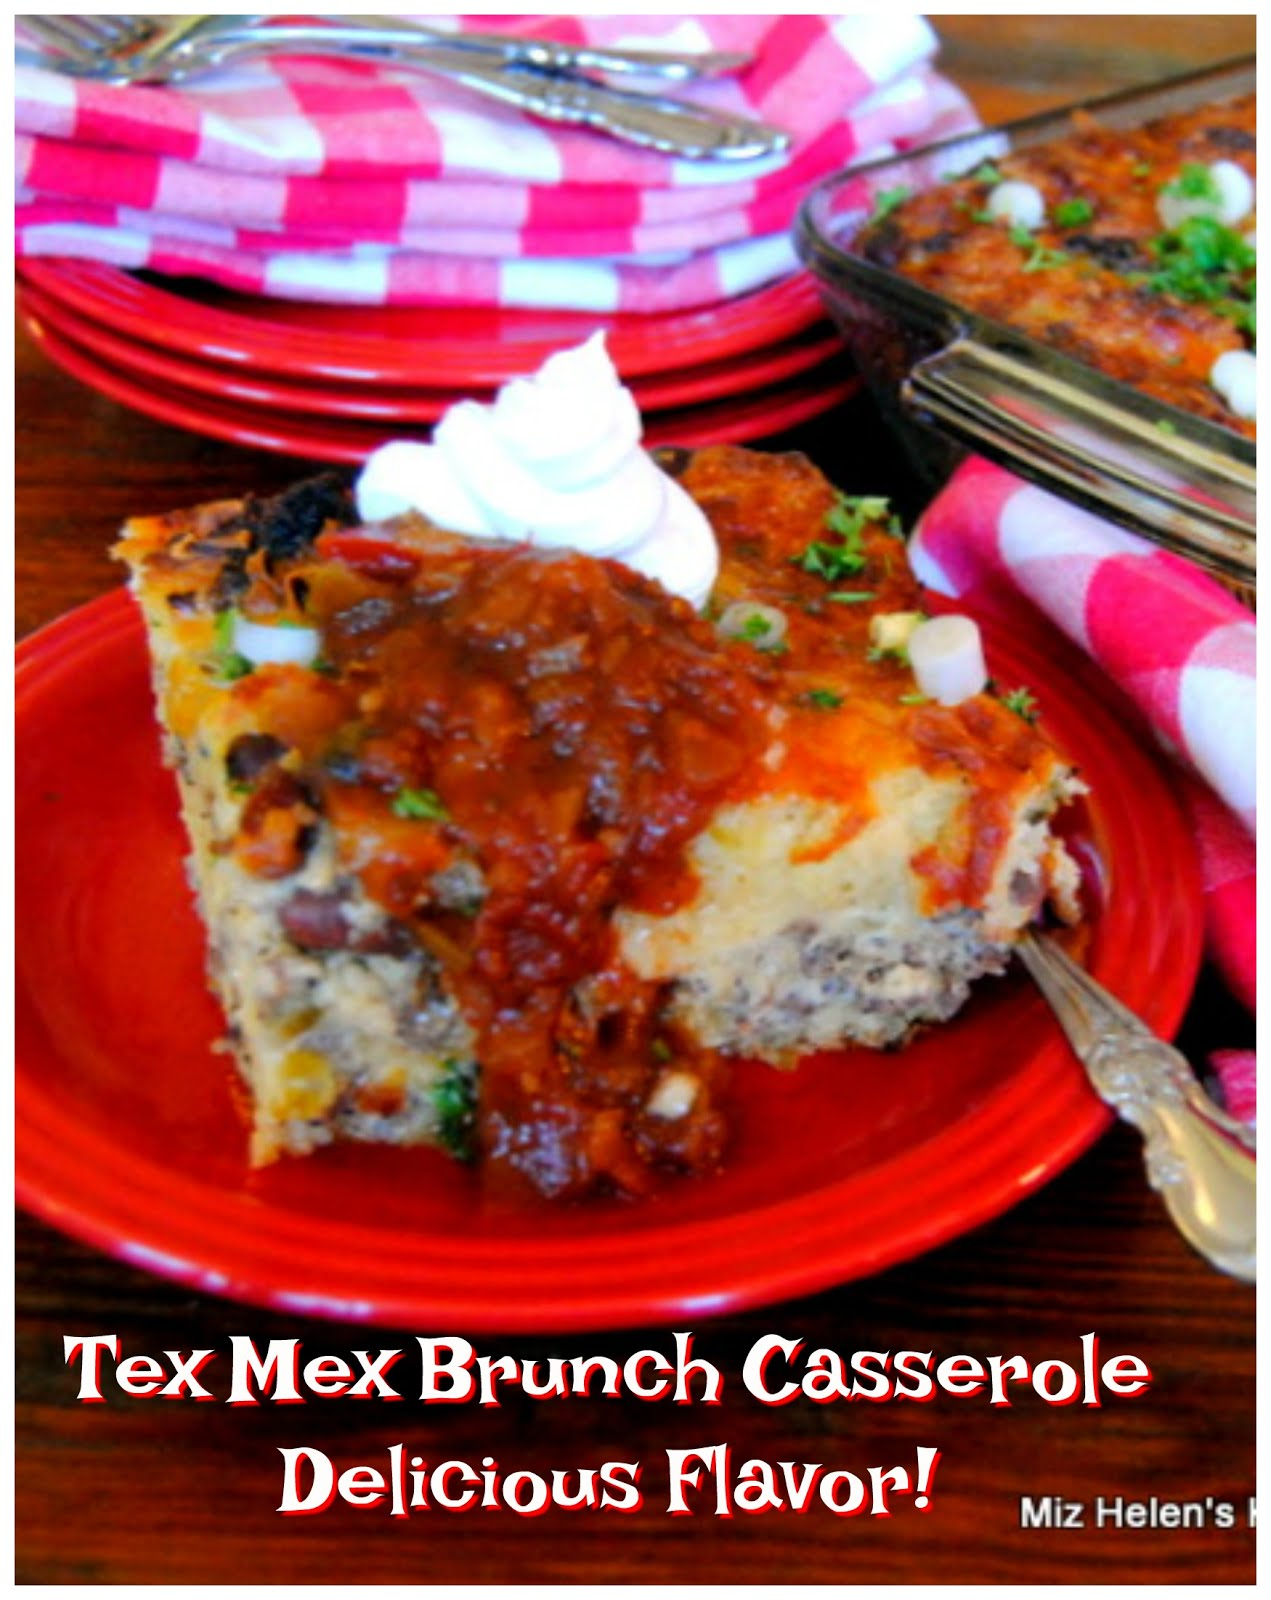 Tex Mex Brunch Casserole